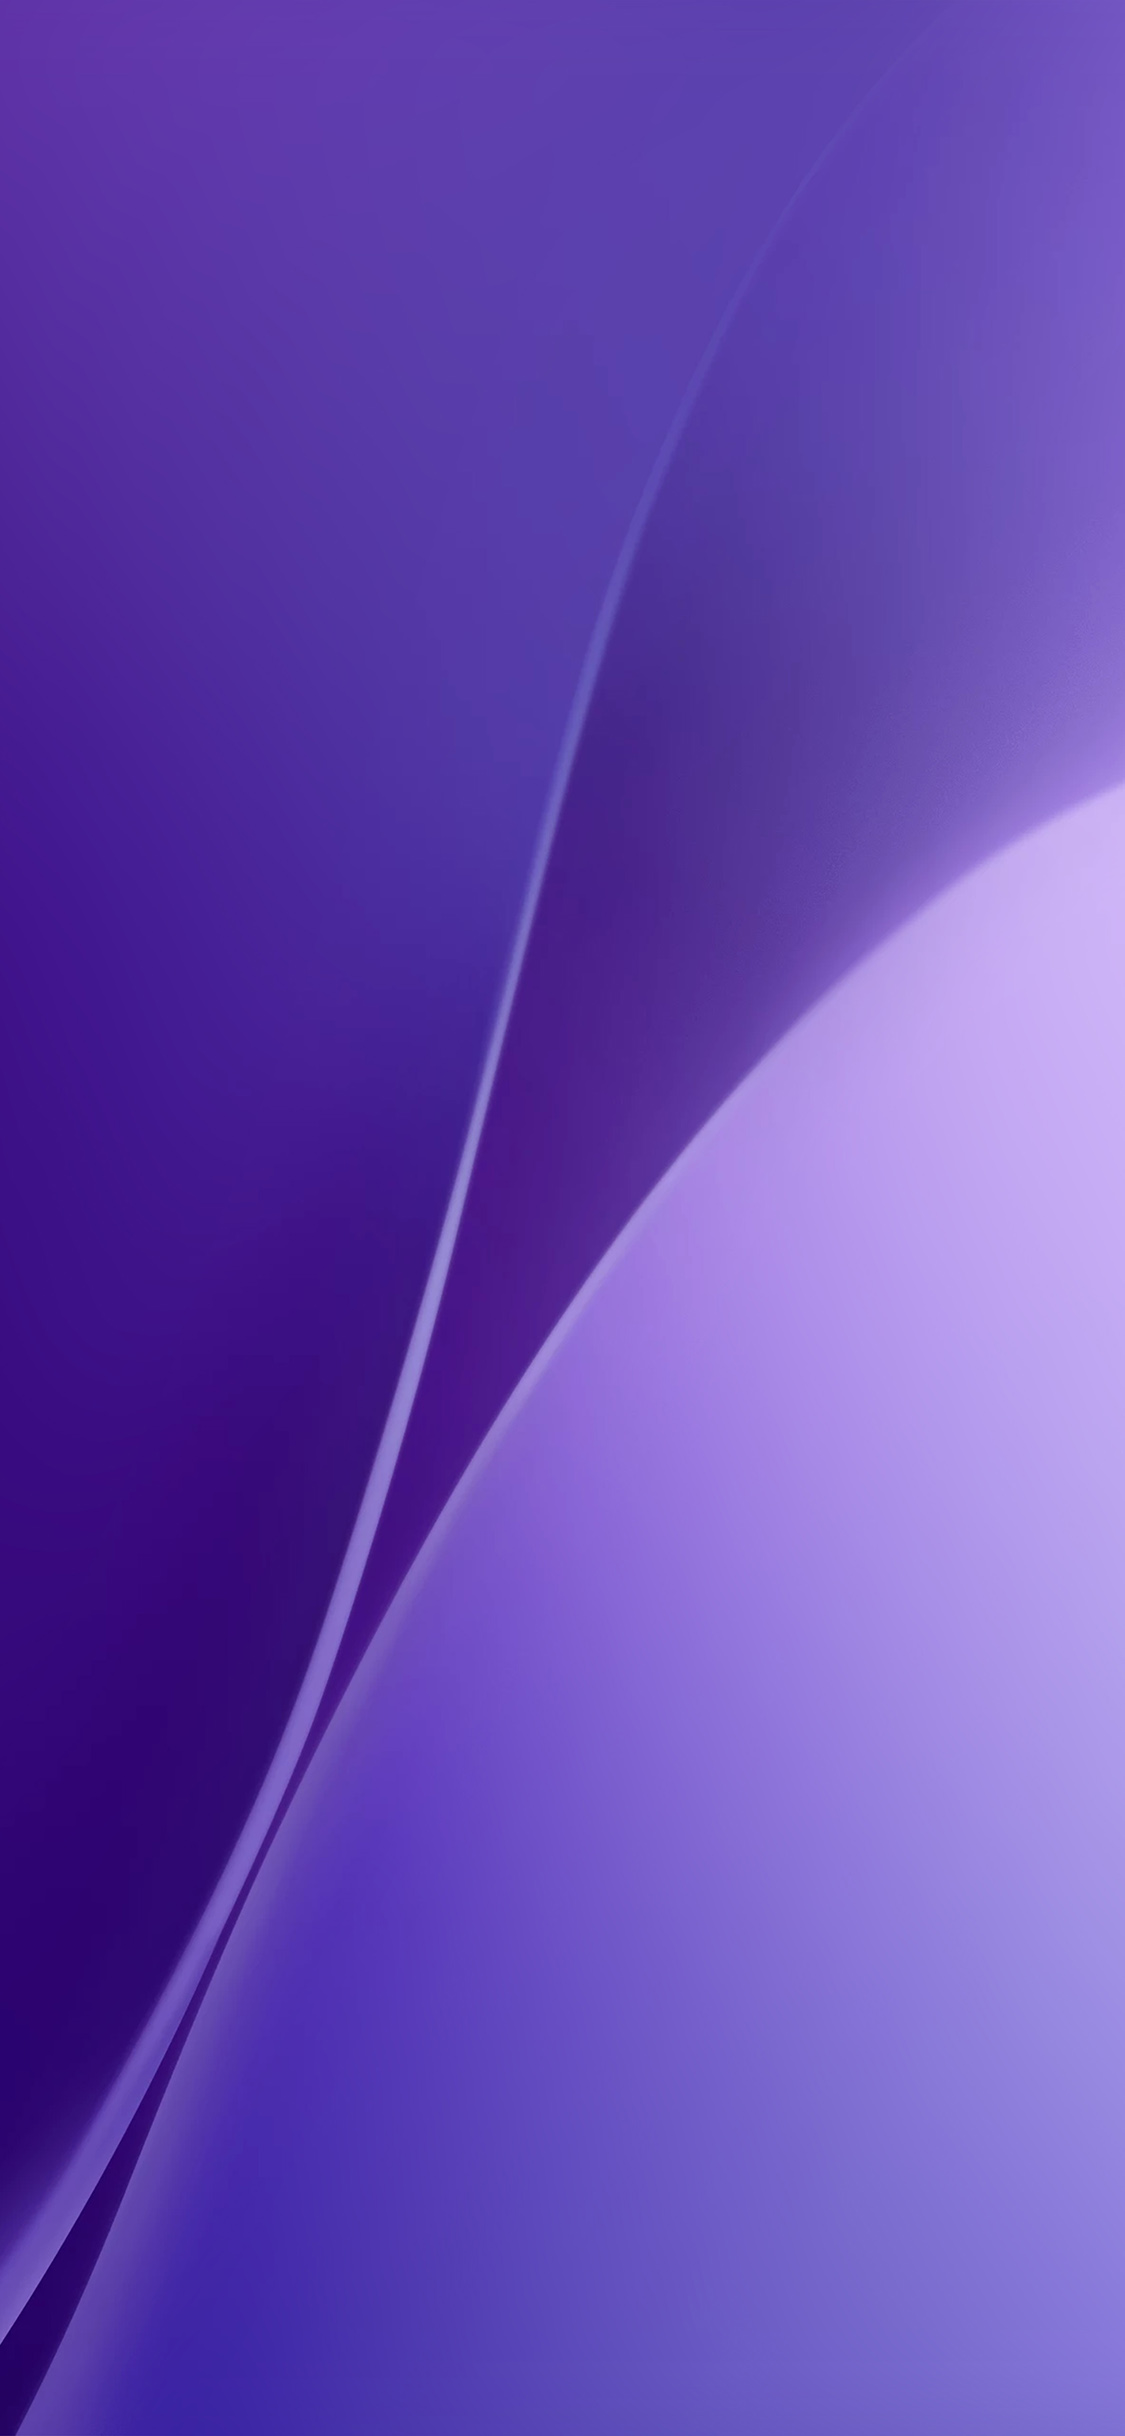 papers.co vl73 abstract lines purple galaxy pattern 41 iphone wallpaper